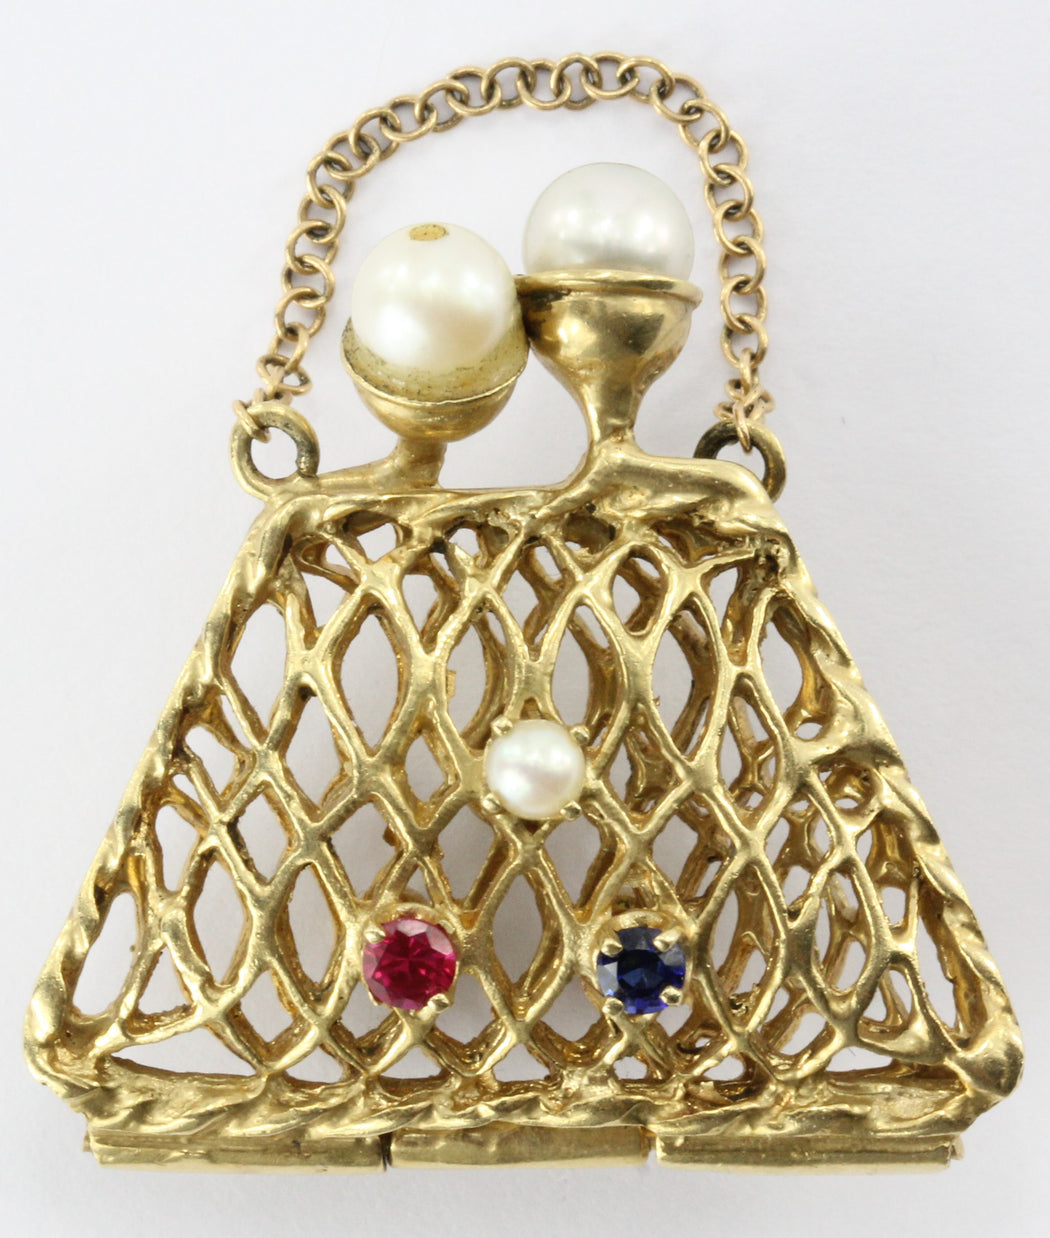 14K Gold Woven Sapphire, Ruby, & Pearl Opening Purse Pendant / Charm